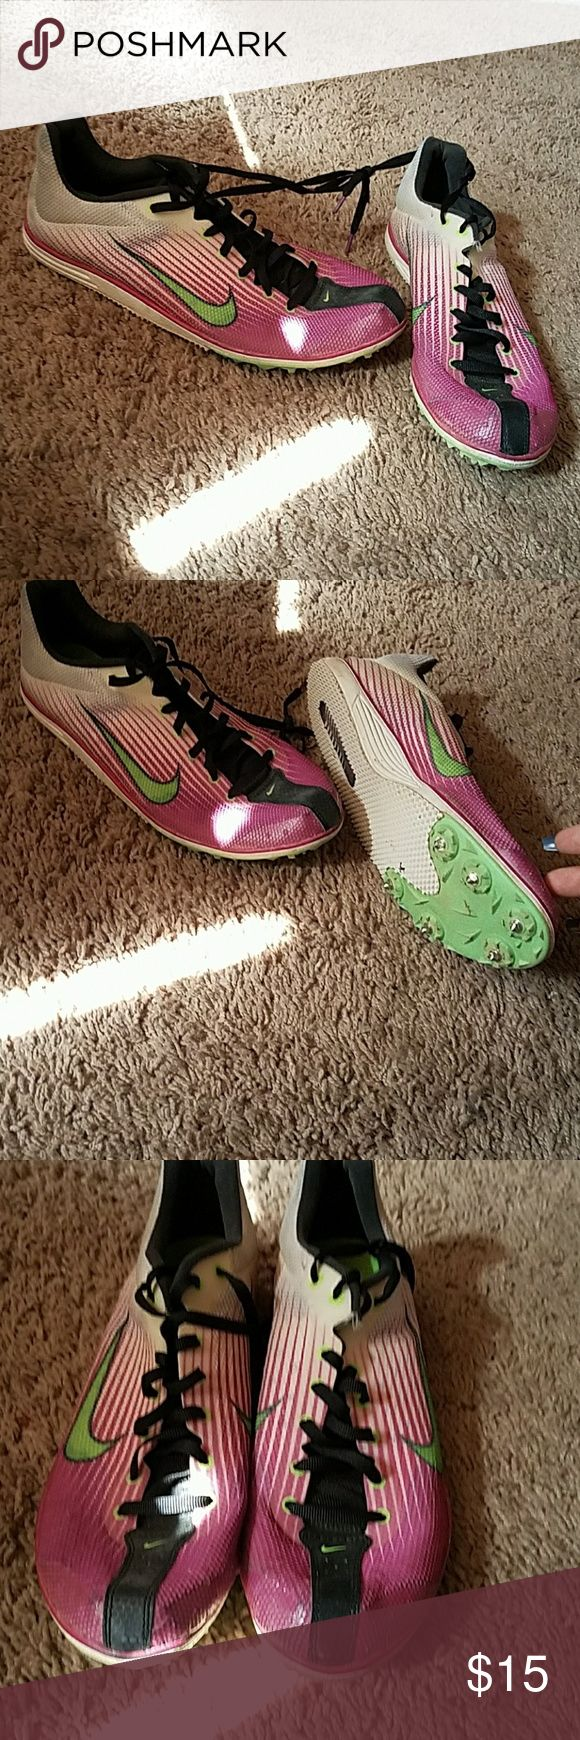 Track and field shoes/spikes Nike track and field shoes.  Spikes included a bit worn out. Nike Shoes Athletic Shoes